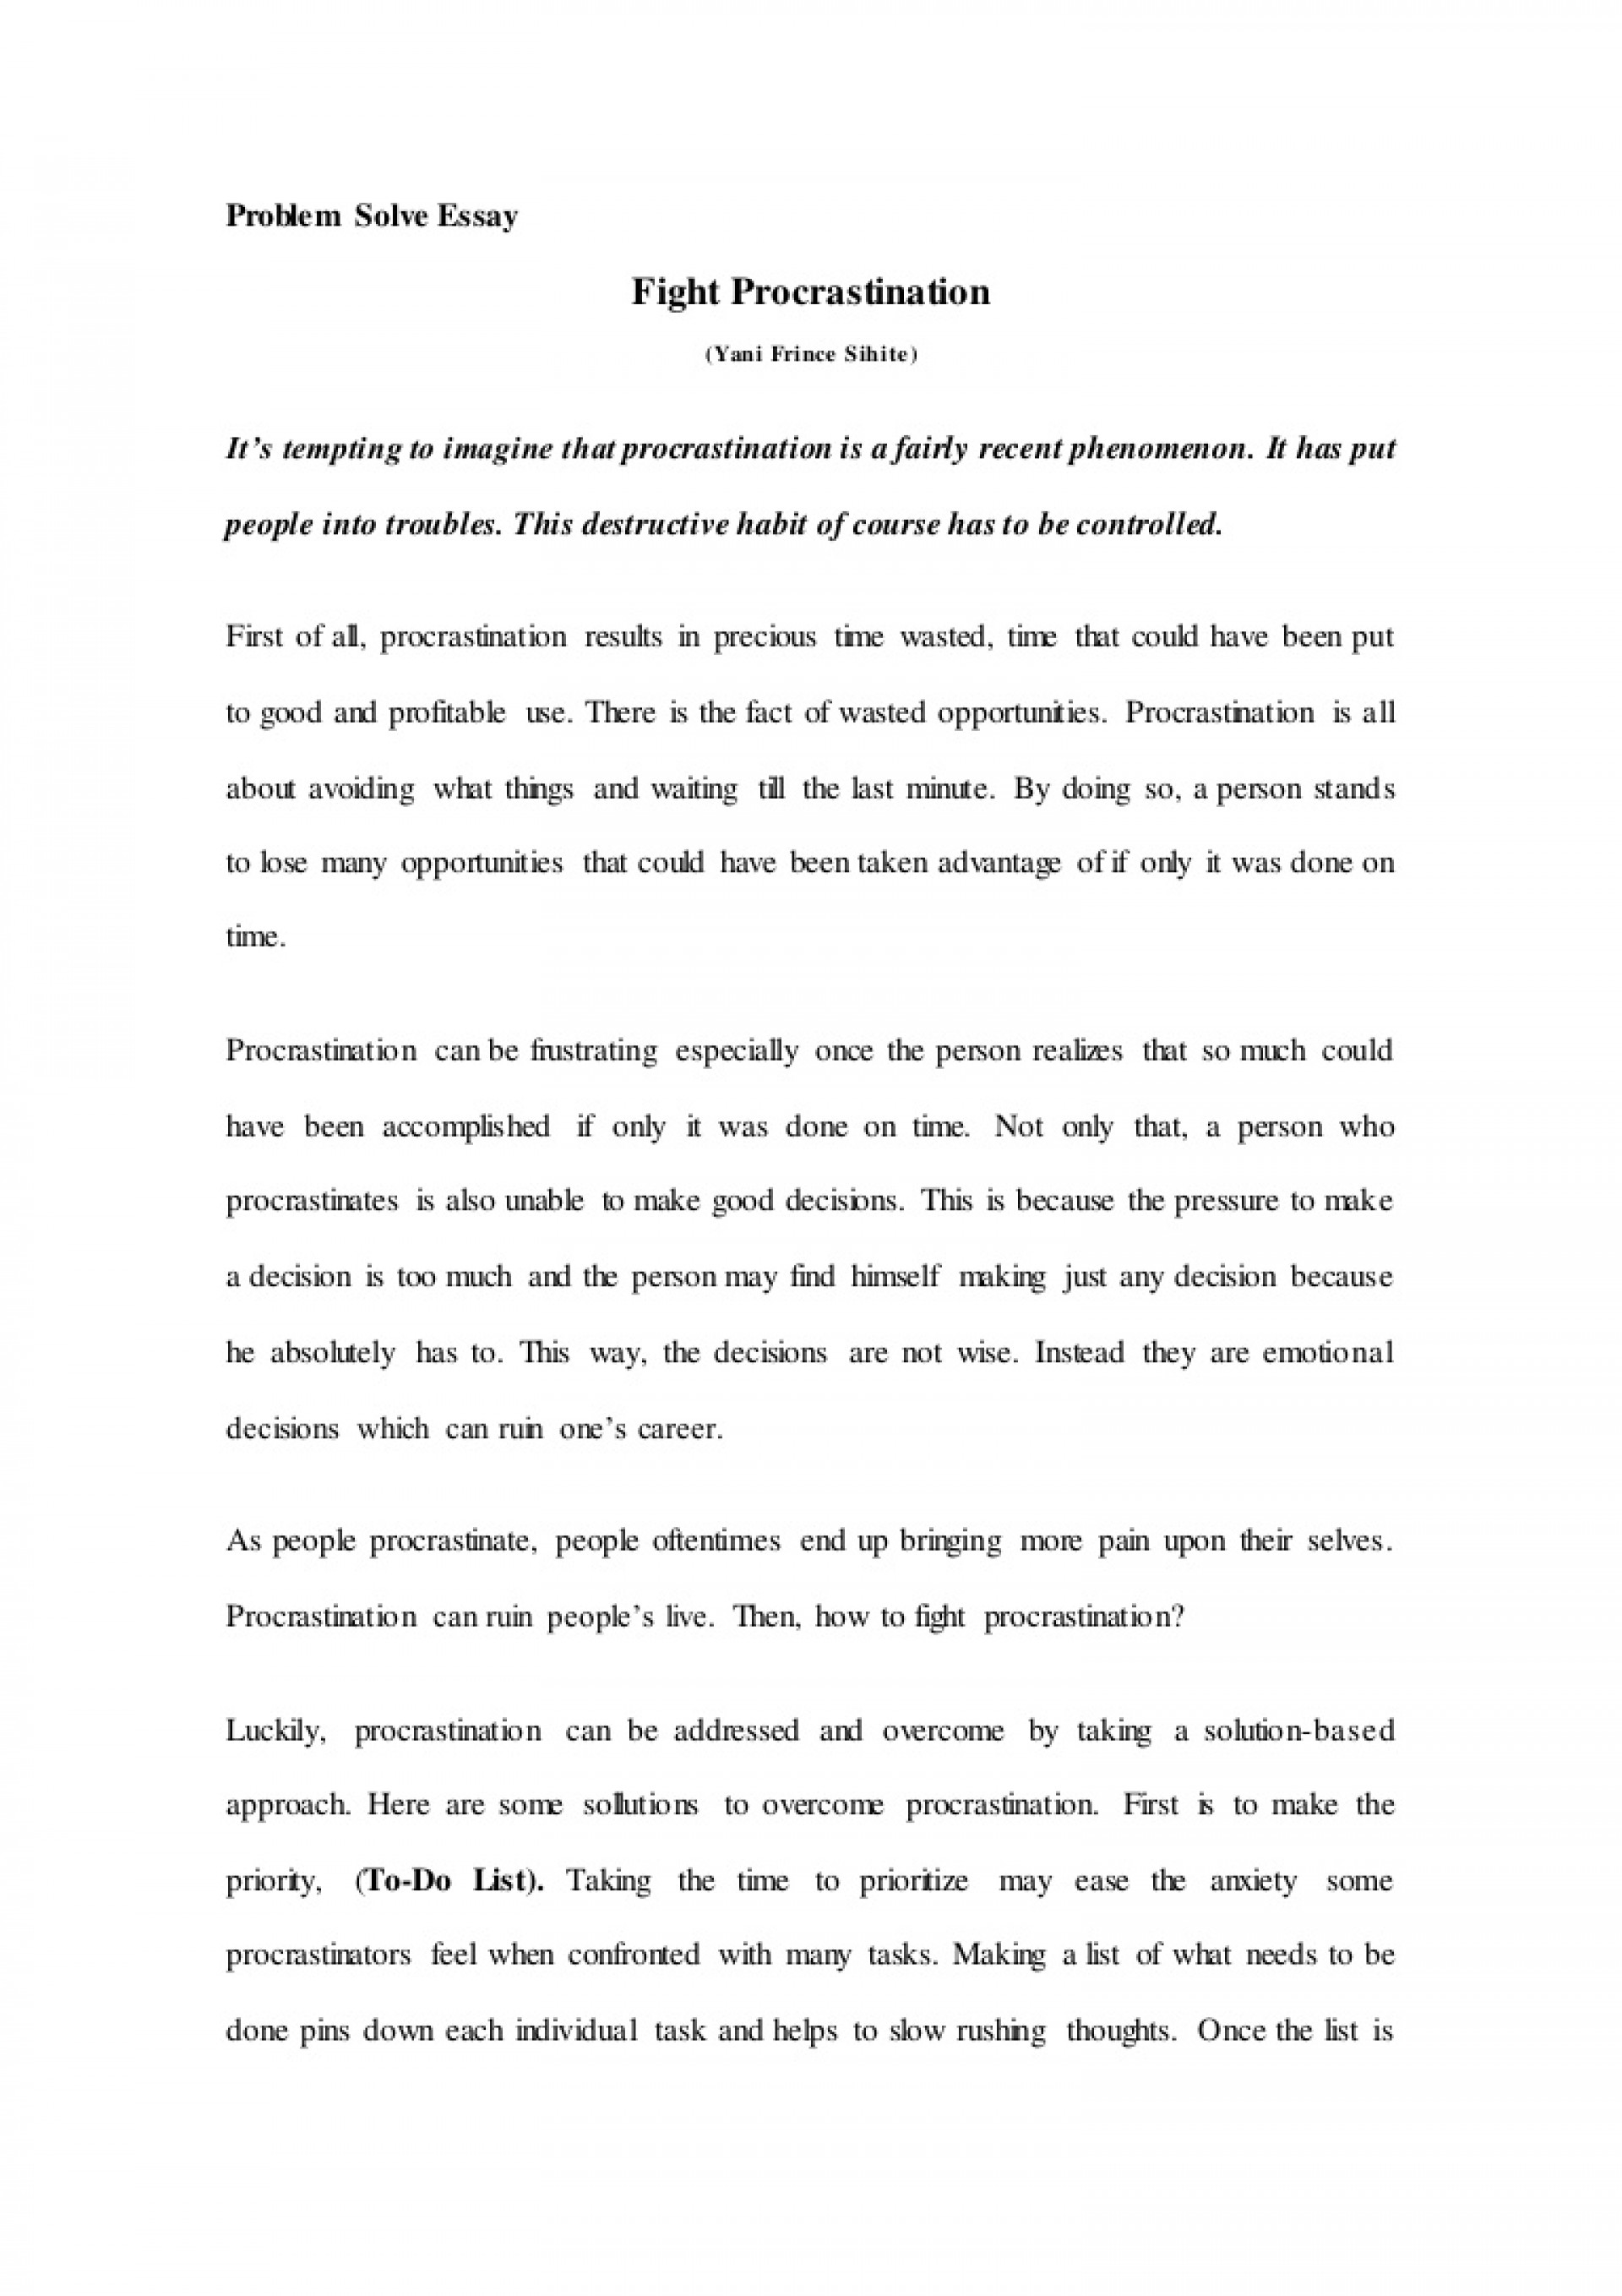 002 Essay Example Problemsolveessay Thumbnail Breathtaking Procrastination Introduction Cause And Effect Writing 1920